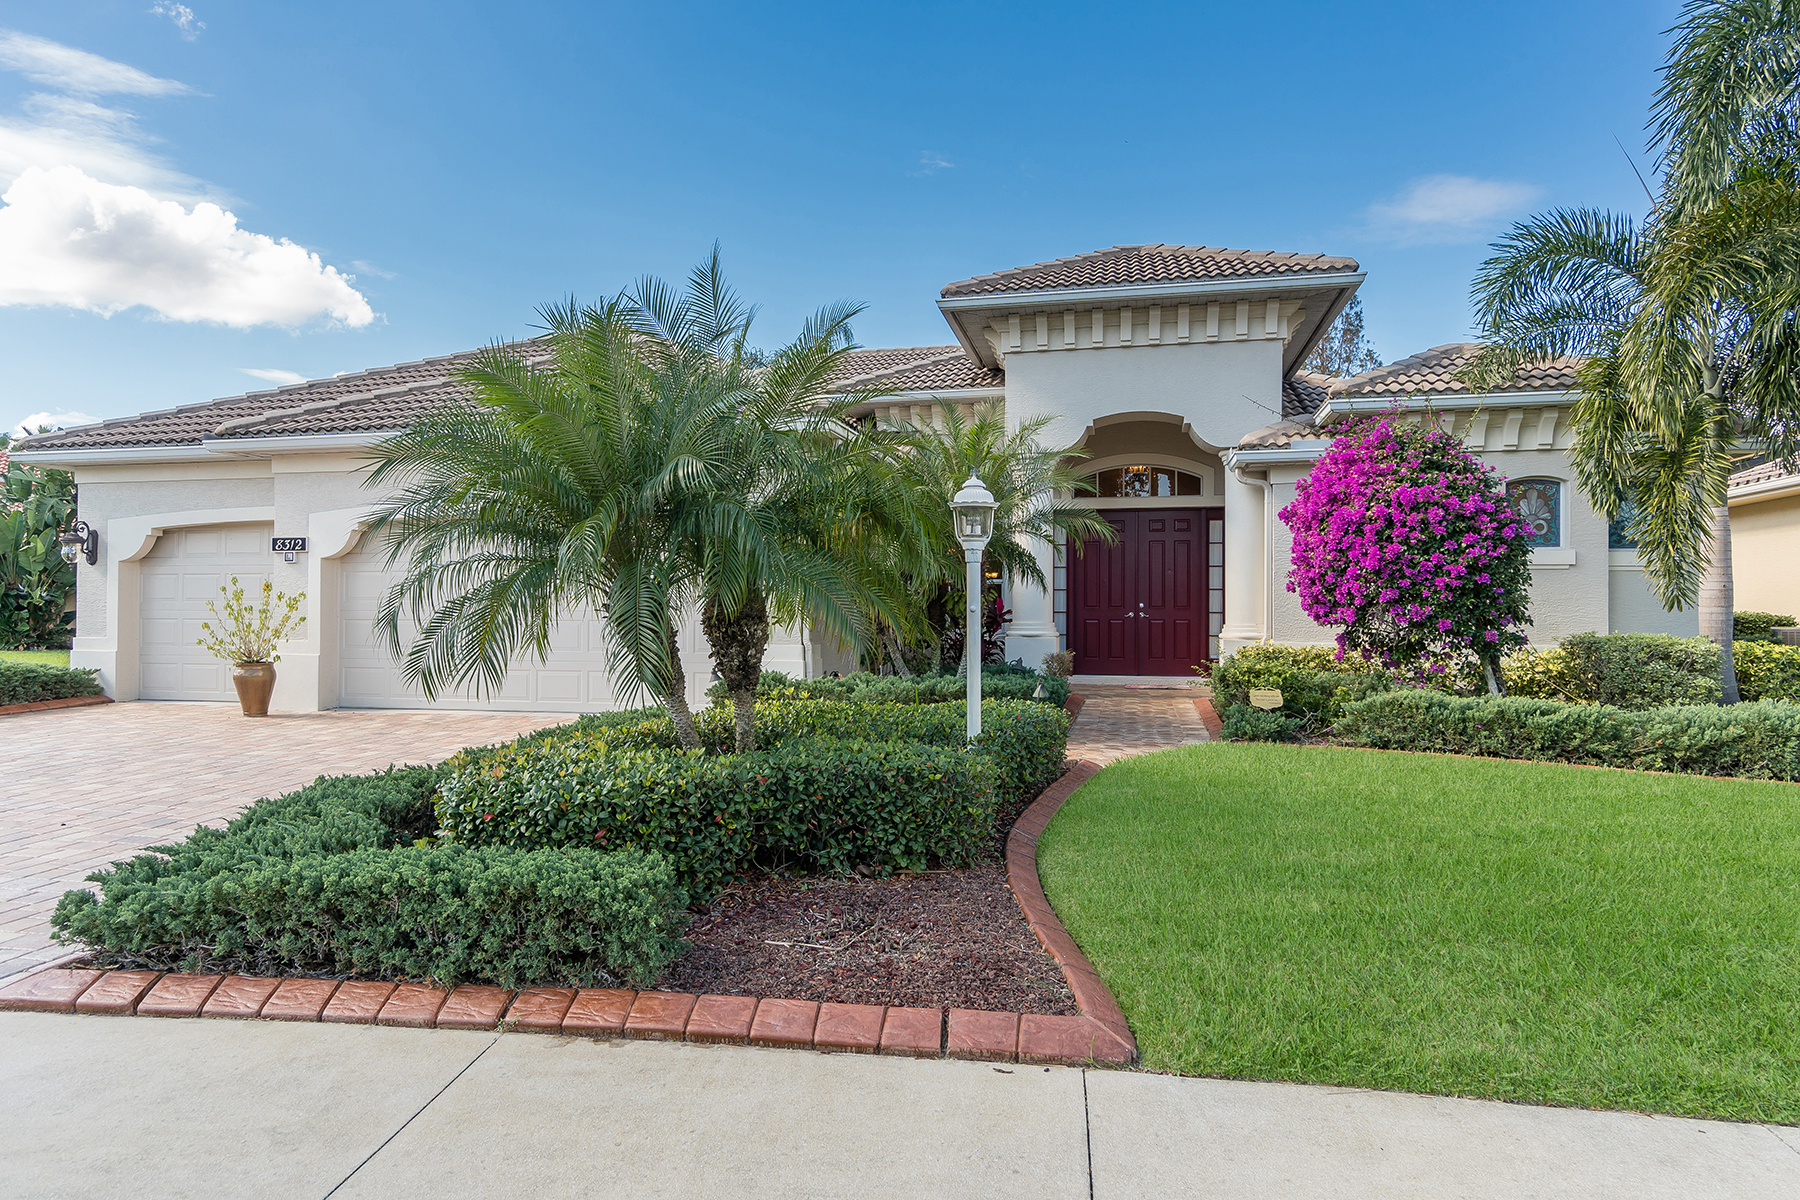 Single Family Home for Sale at LAKEWOOD RANCH 8312 Championship Ct Lakewood Ranch, Florida, 34202 United States